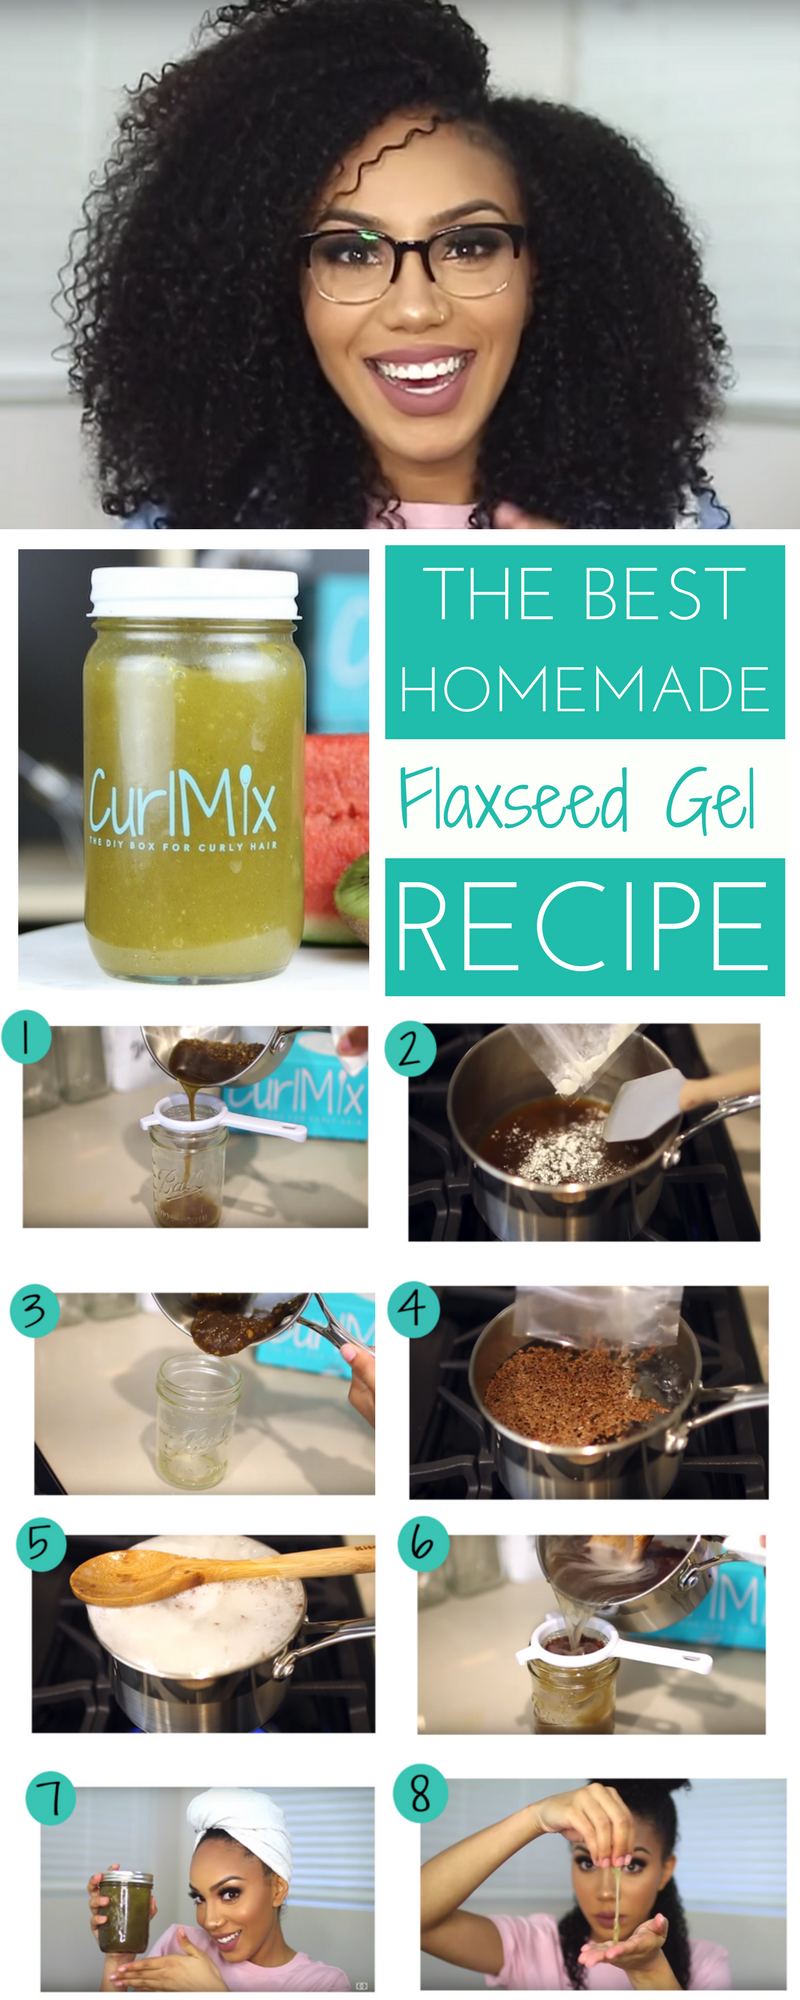 Best Homemade Diy Flaxseed Gel Recipe Updated For 2020 Flaxseed Gel Flaxseed Gel Recipe Homemade Hair Products